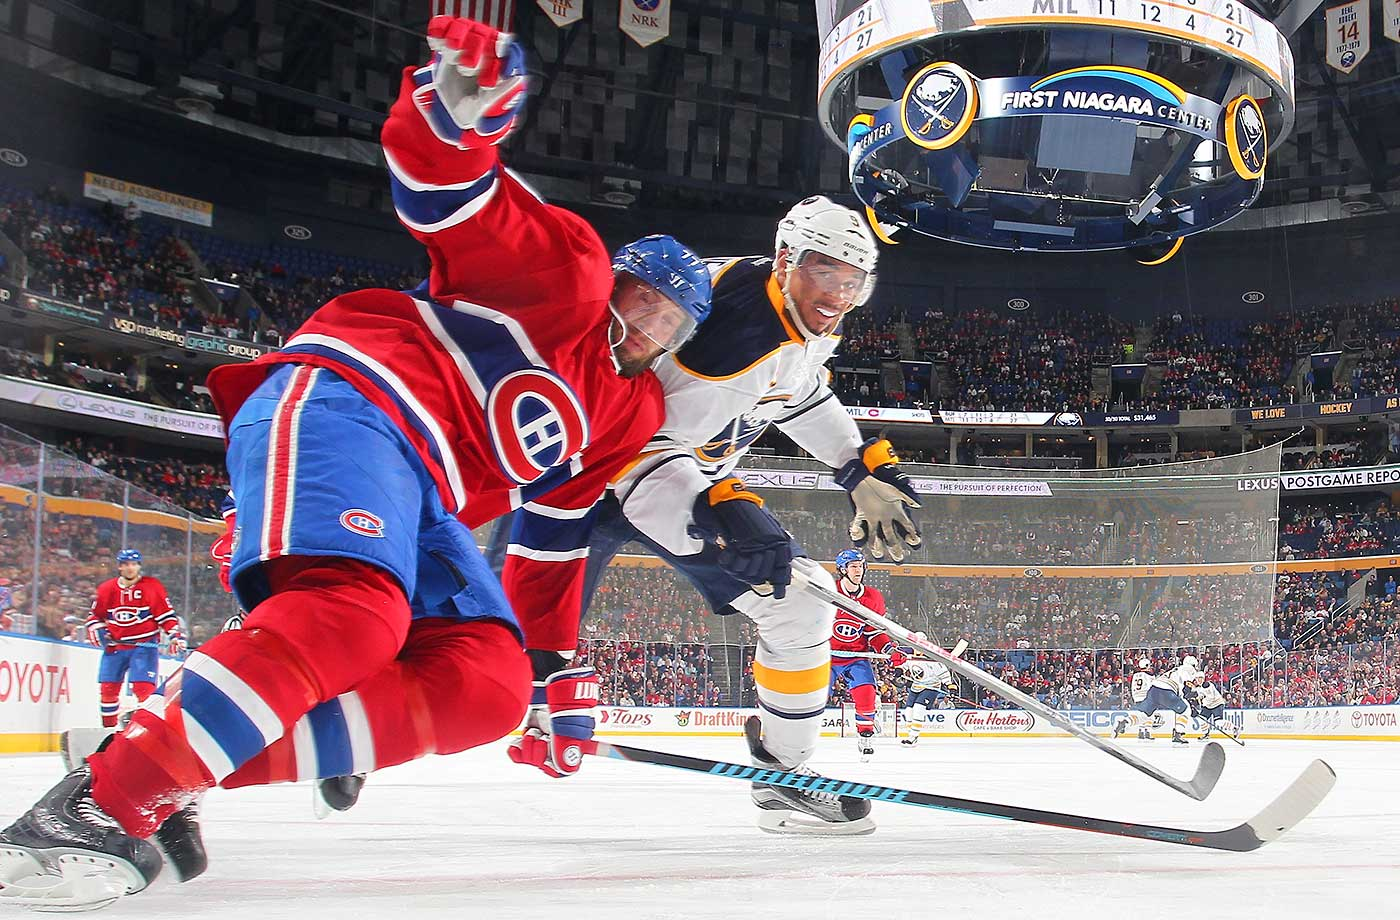 Evander Kane of the Buffalo Sabres battles for the puck against Tom Gilbert of the Montreal Canadiens.